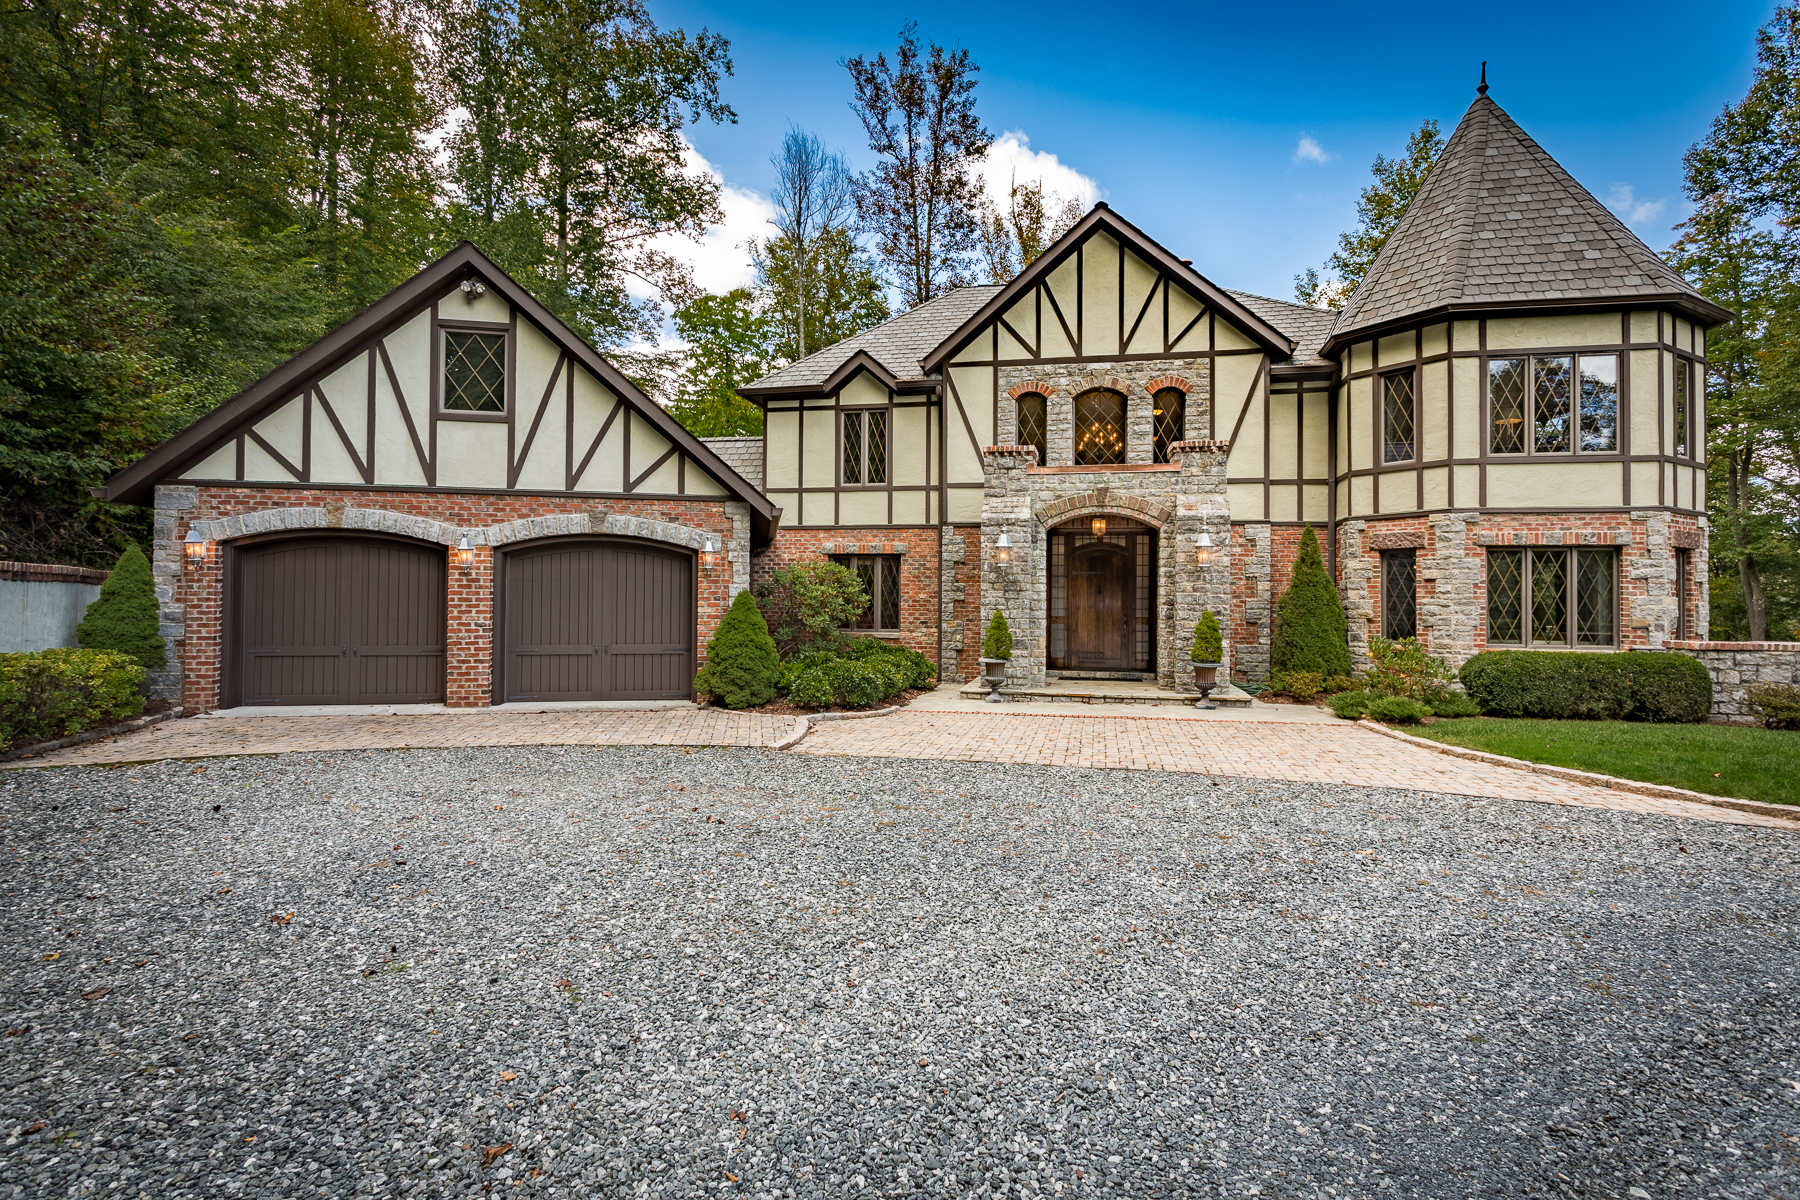 Single Family Home for Sale at ENGLISH TUDOR ESTATE 838 Church Road Rd Boone, North Carolina, 28607 United States